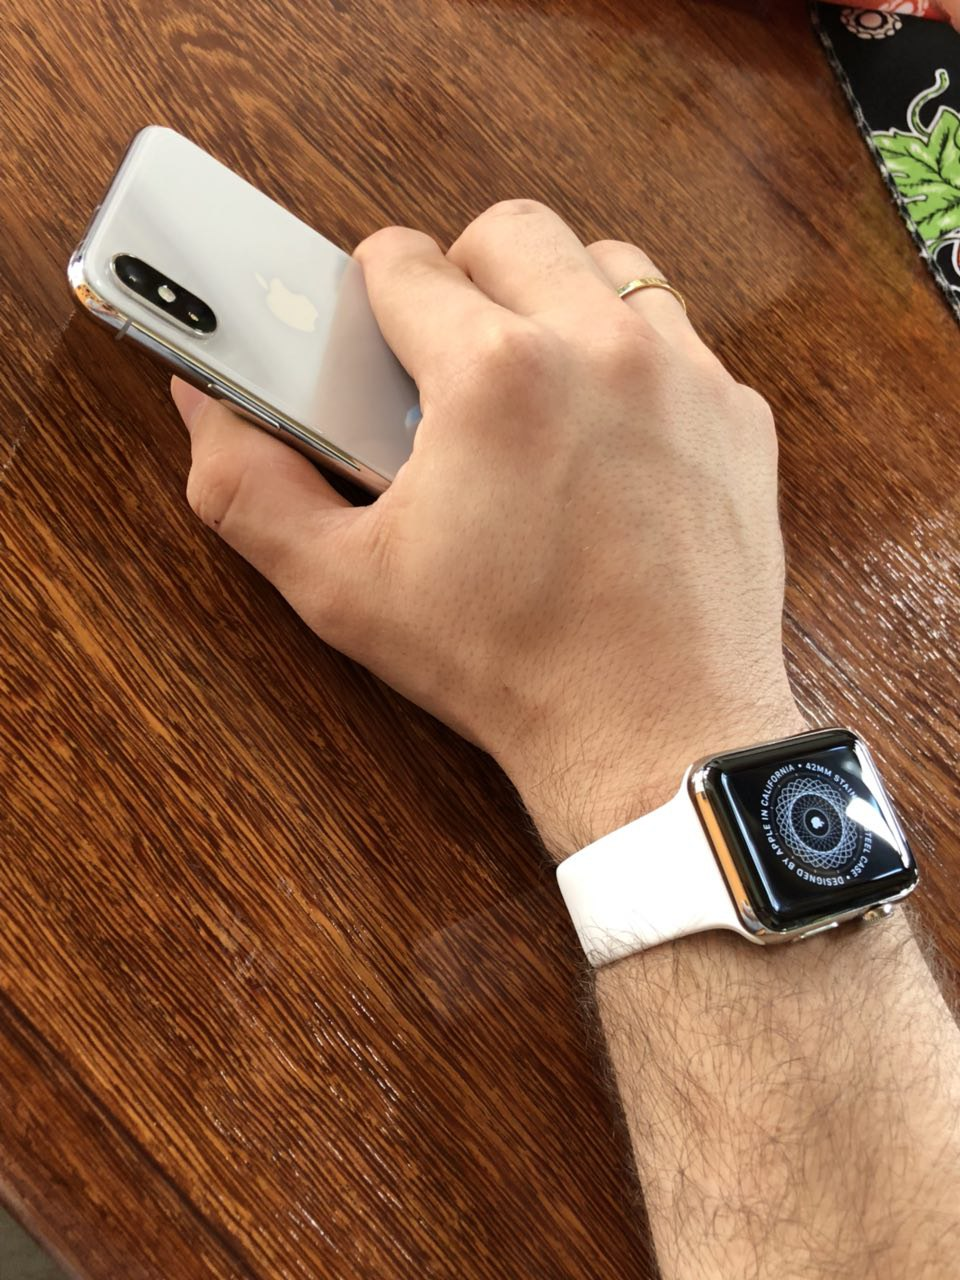 Apple Watch no braço com iPhone X